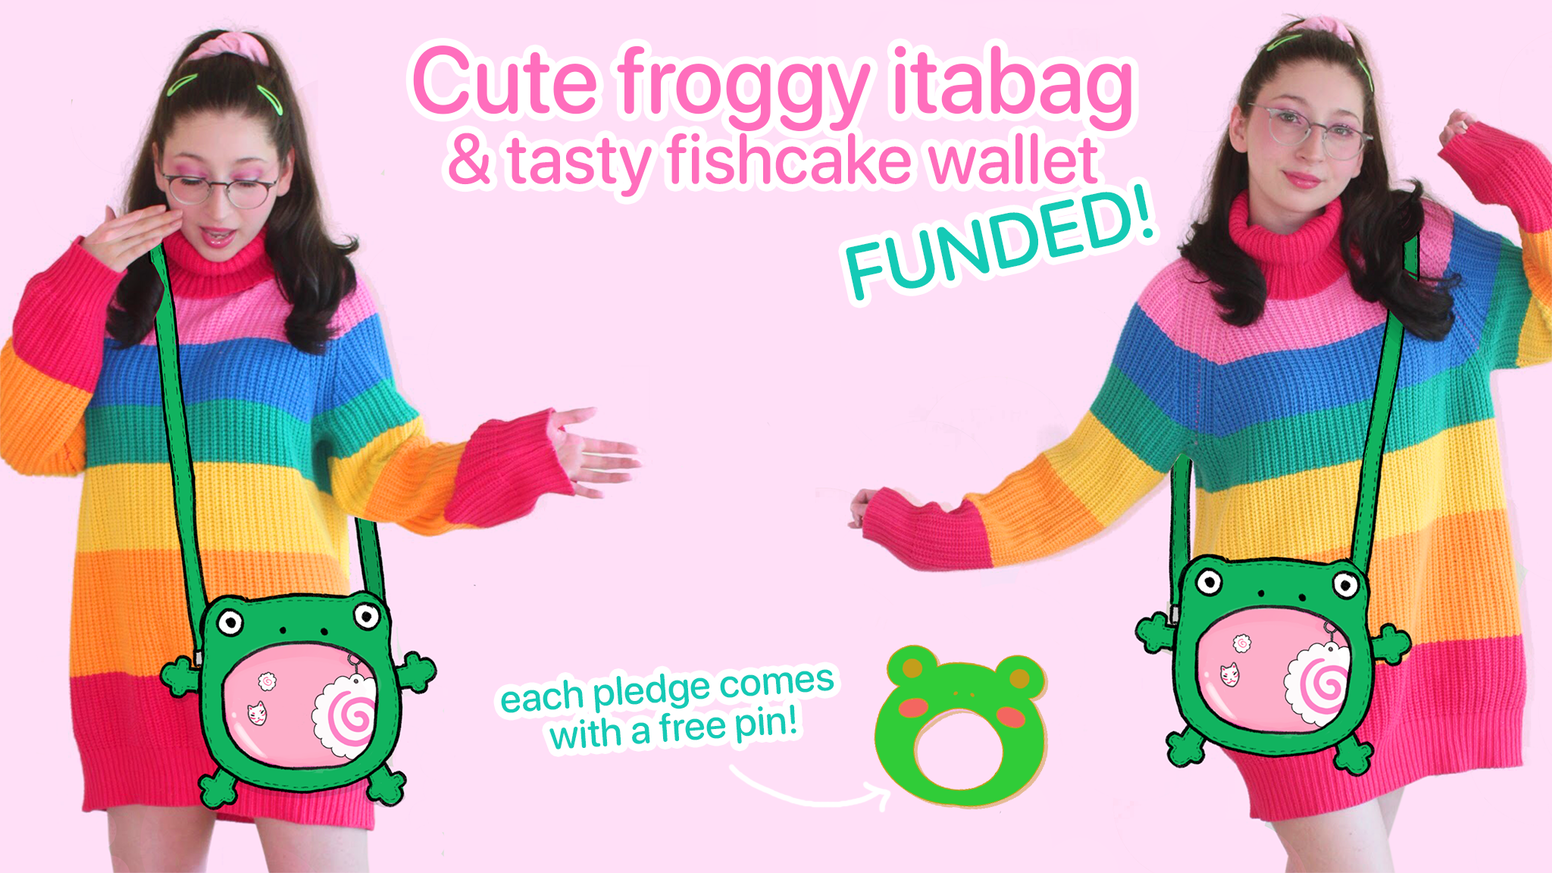 I am designing a cute and functional froggy ita crossbody/shoulder bag (pin bag) & a matching wallet with a fishcake on it!